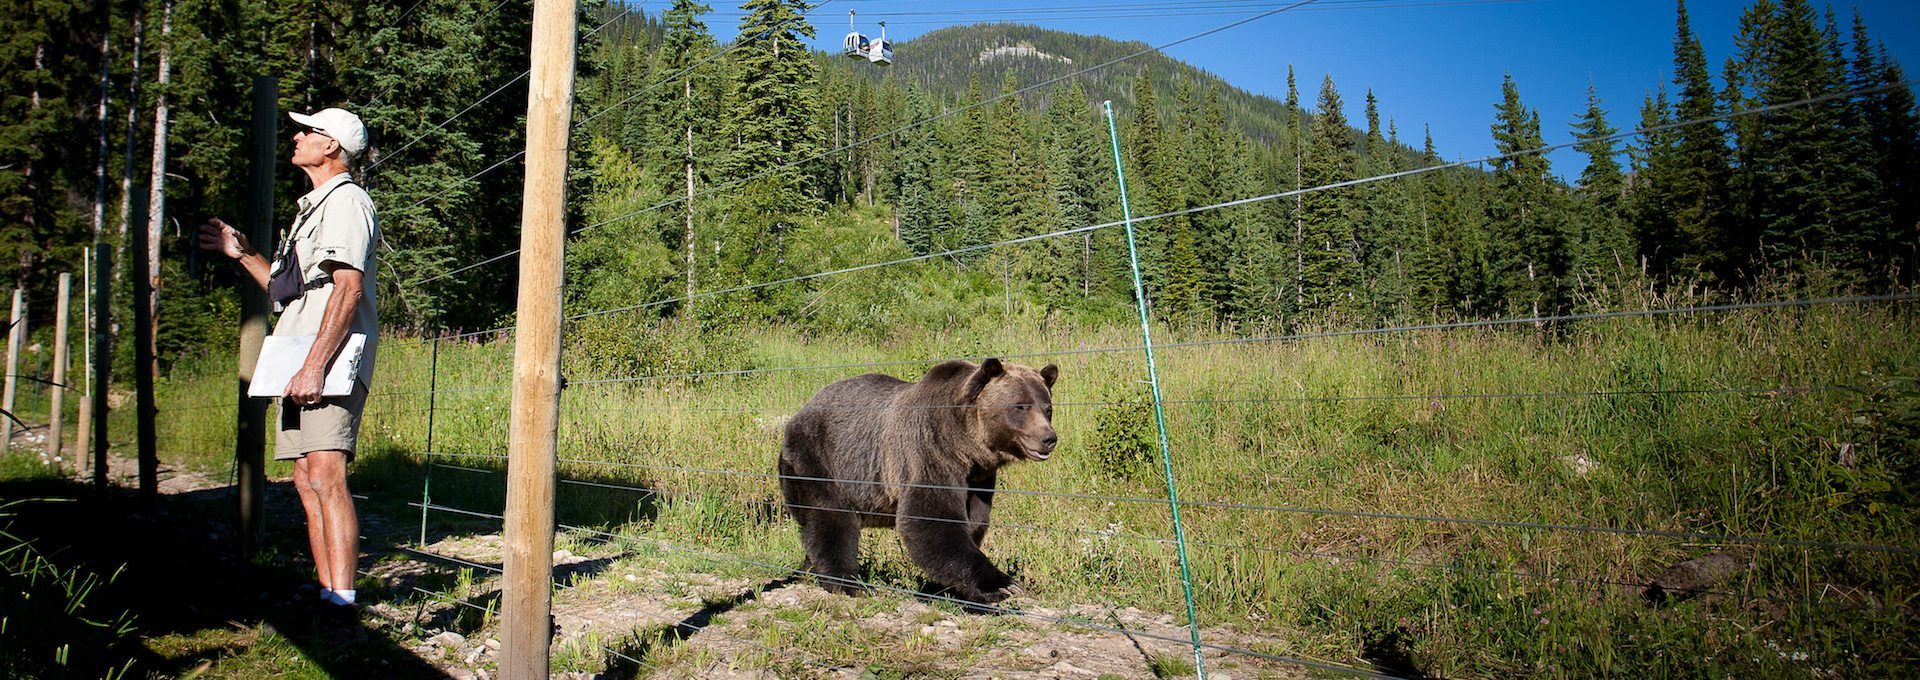 Grizzly Bear Refuge